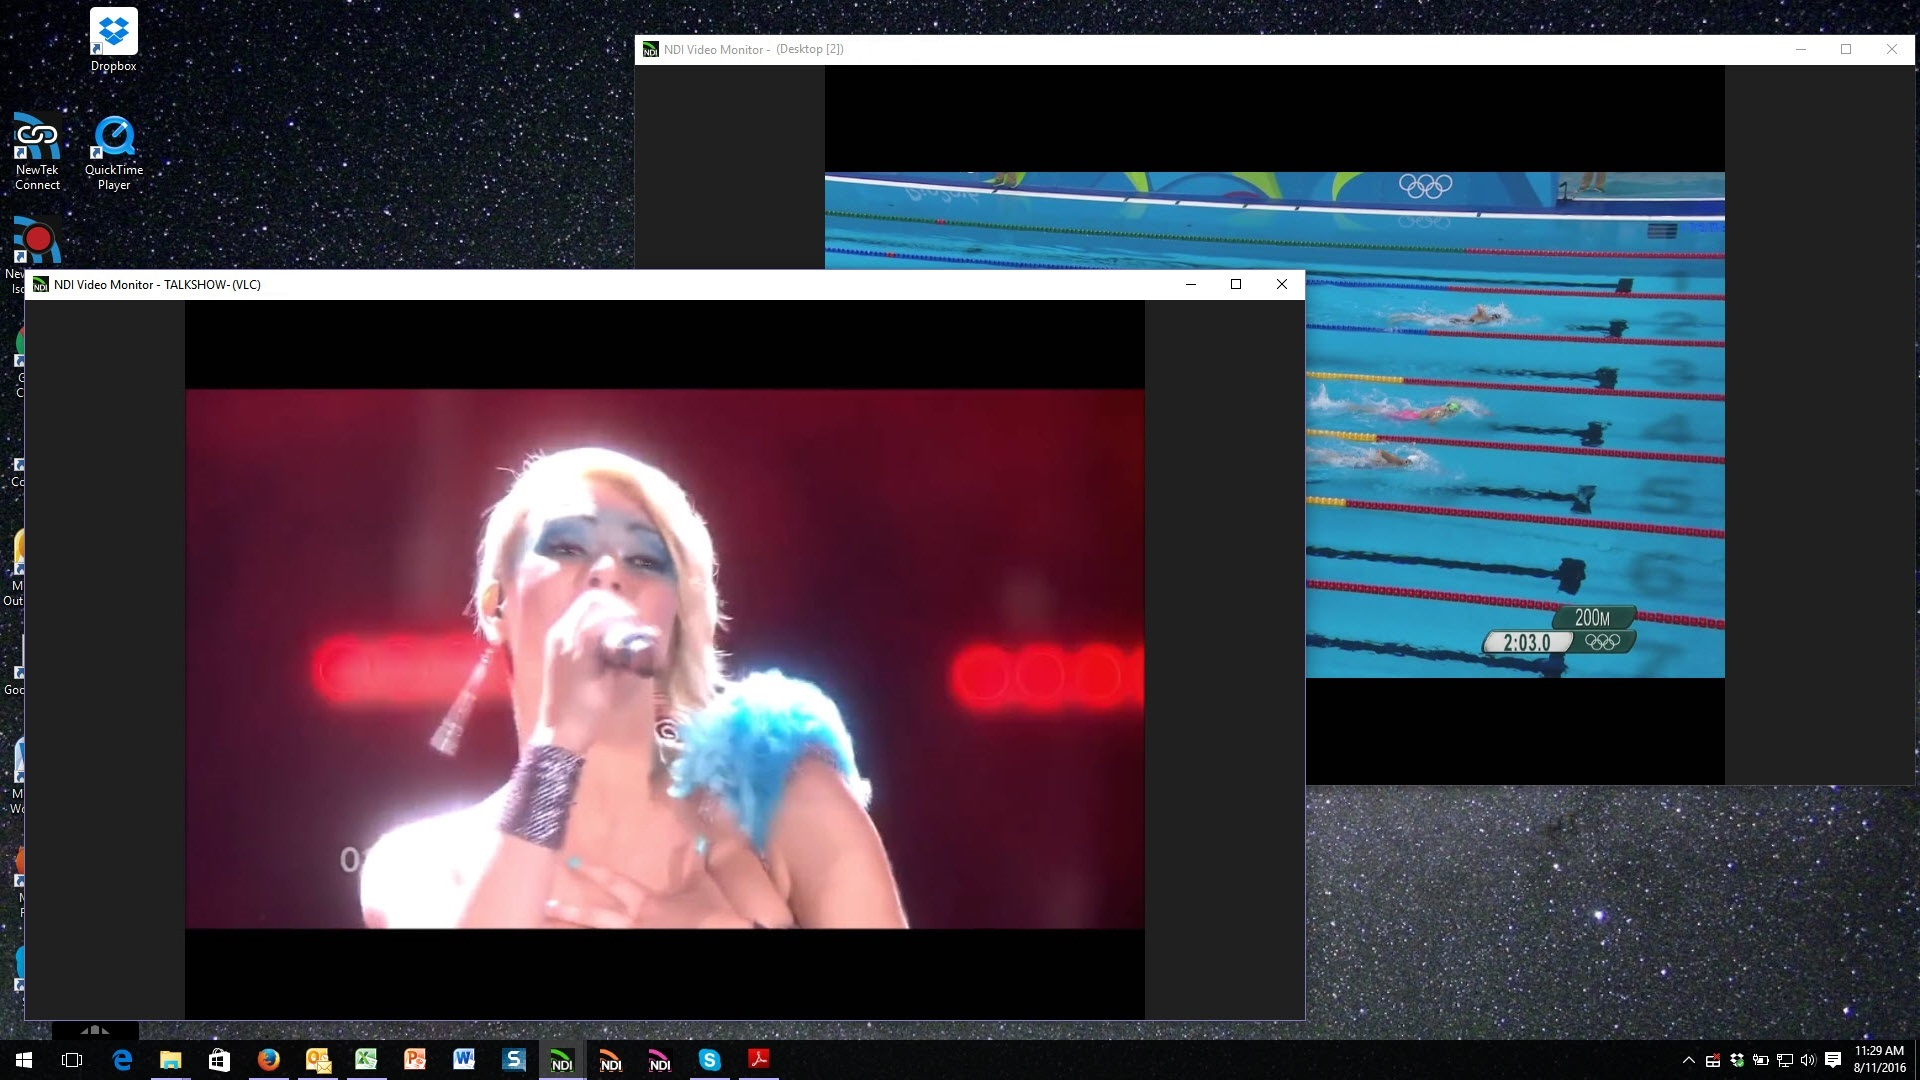 You can open multiple instances of NDI Video Monitor to follow multiple streams of video.